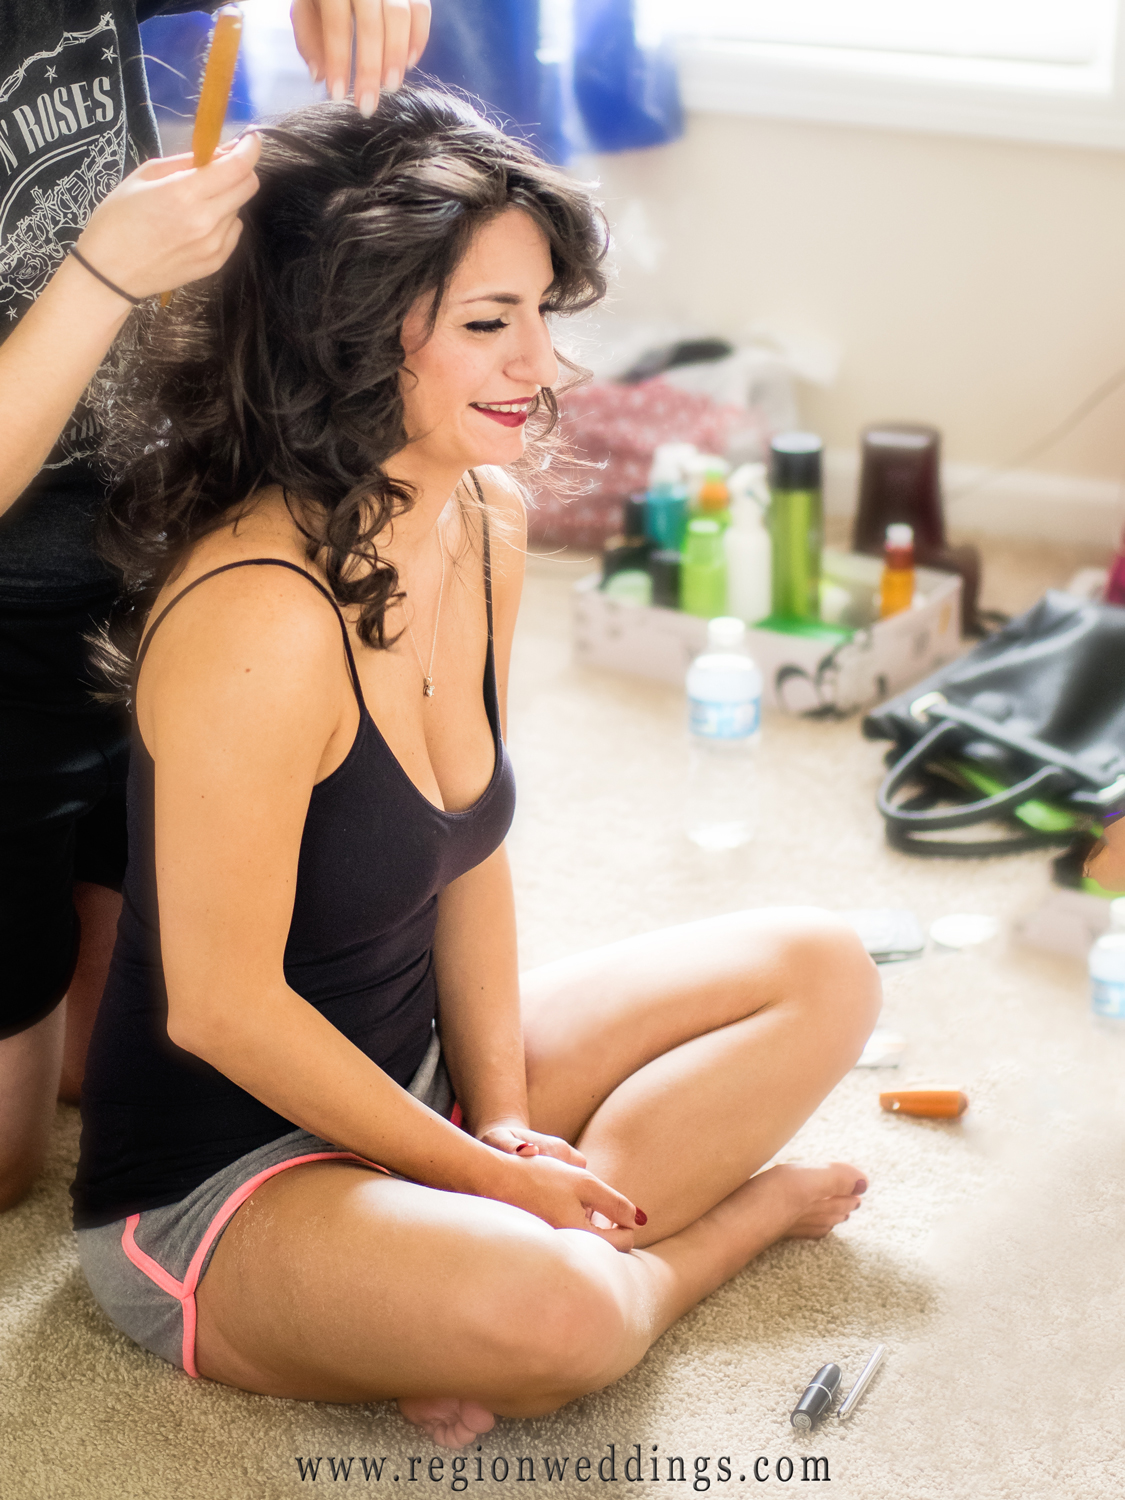 The bride get ready for her big day at her home in Cedar Lake.